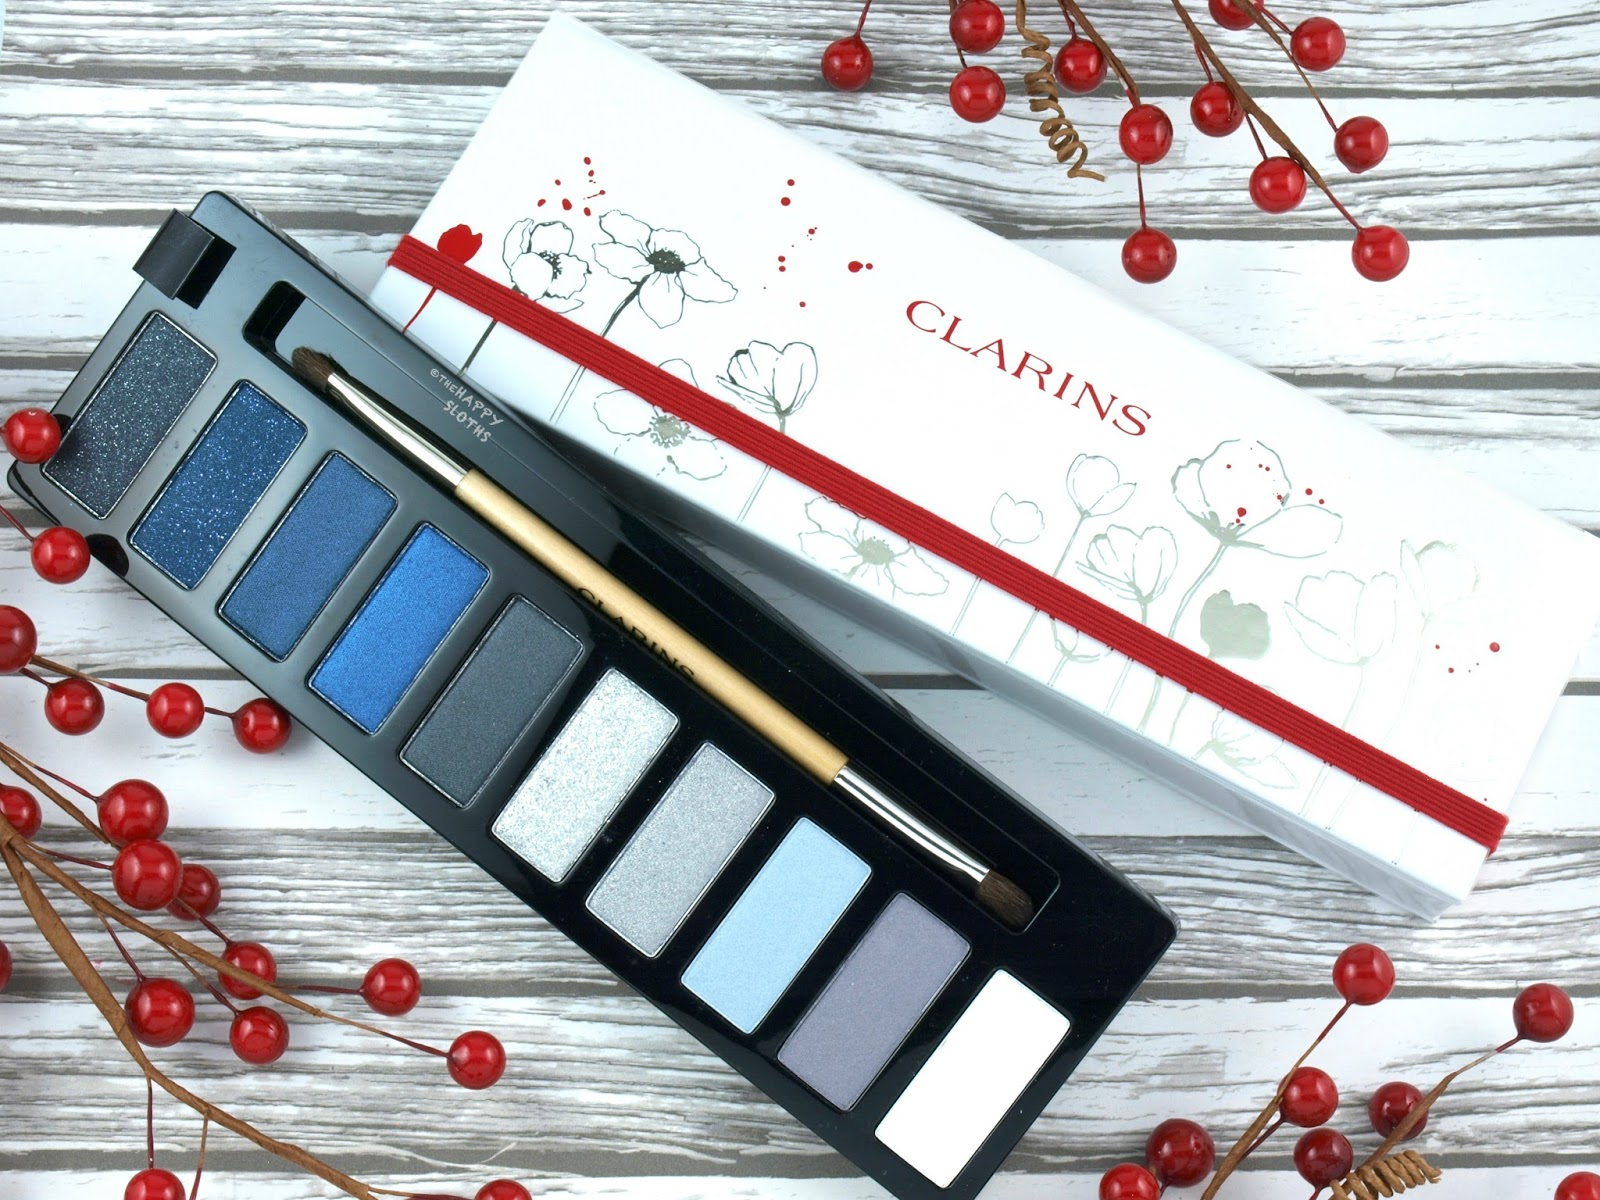 Clarins Holiday 2017 The Essentials Palette: Review and Swatches